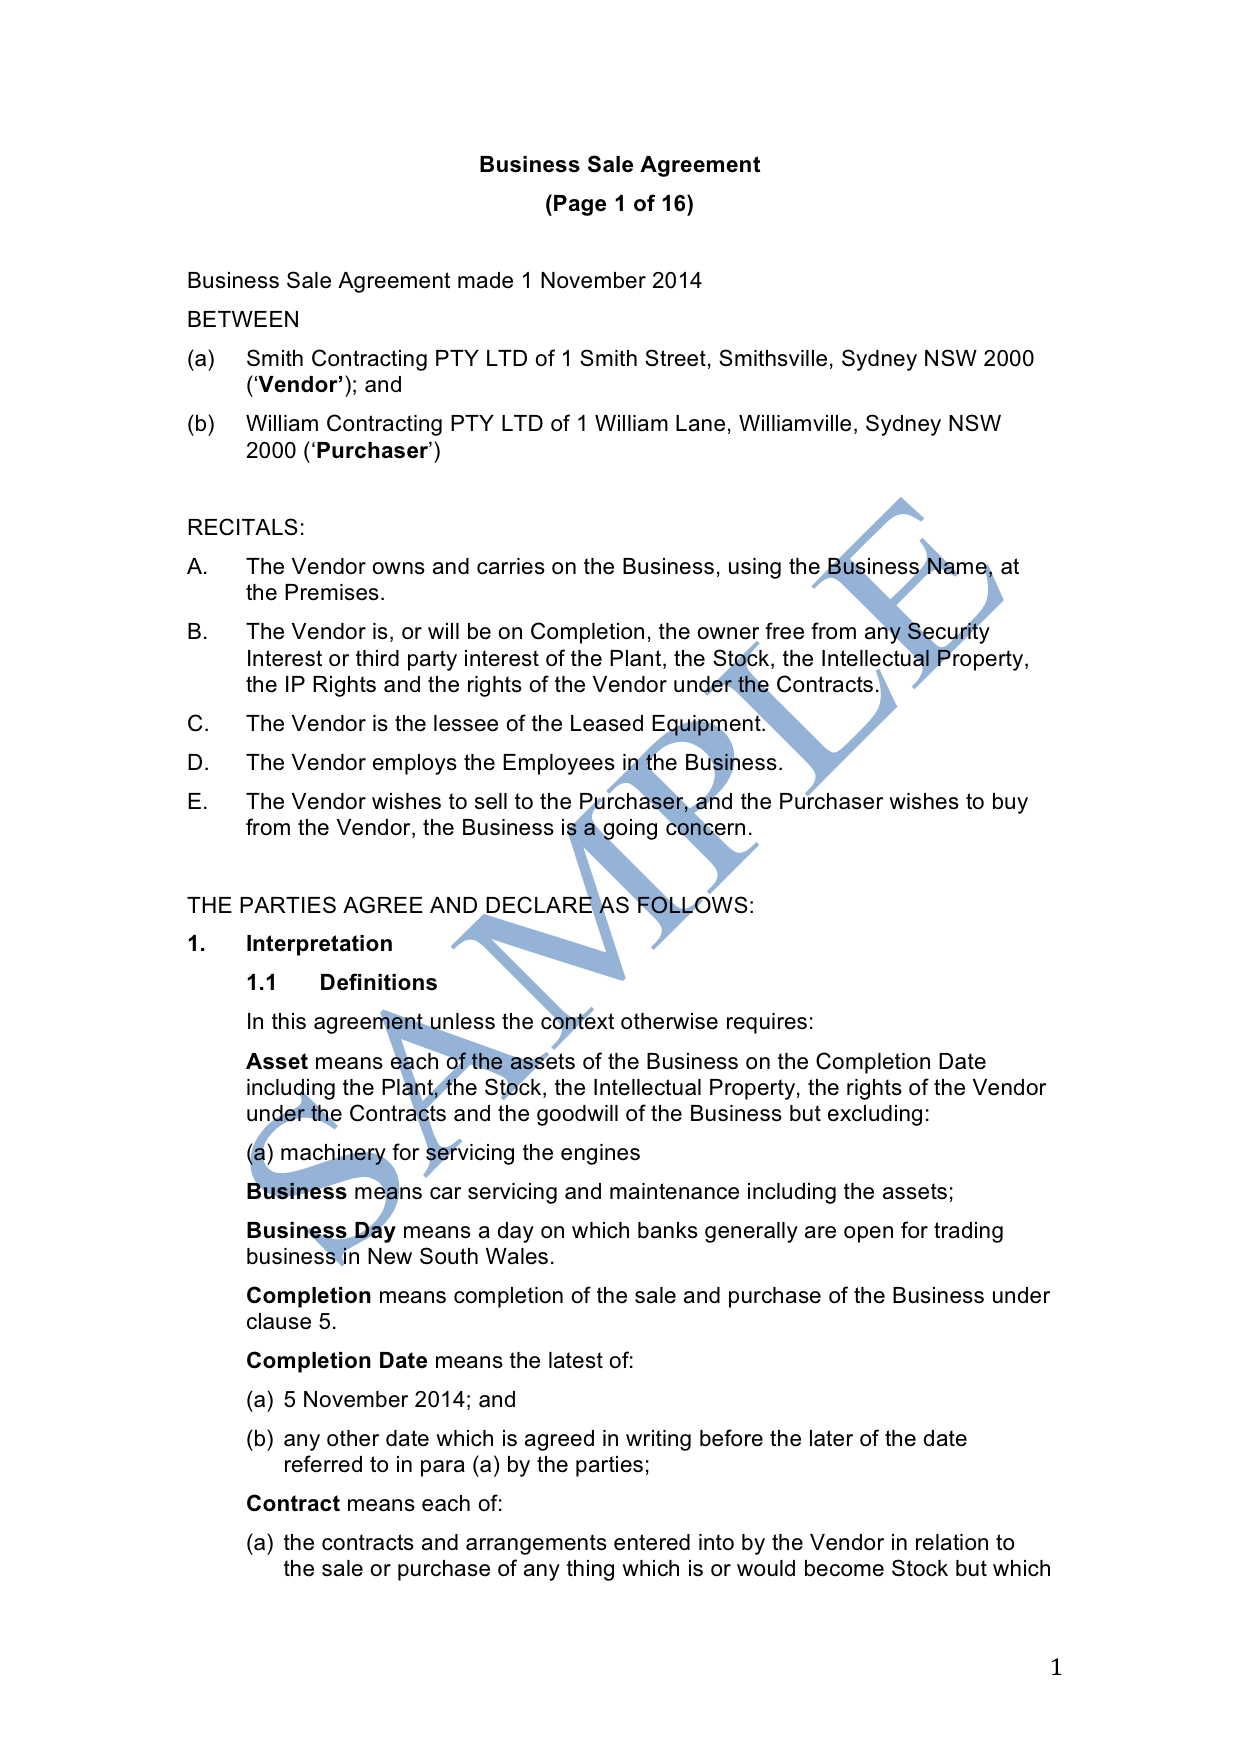 Business sales agreement solarfm 8 sales agency agreement templates sample templates friedricerecipe Images